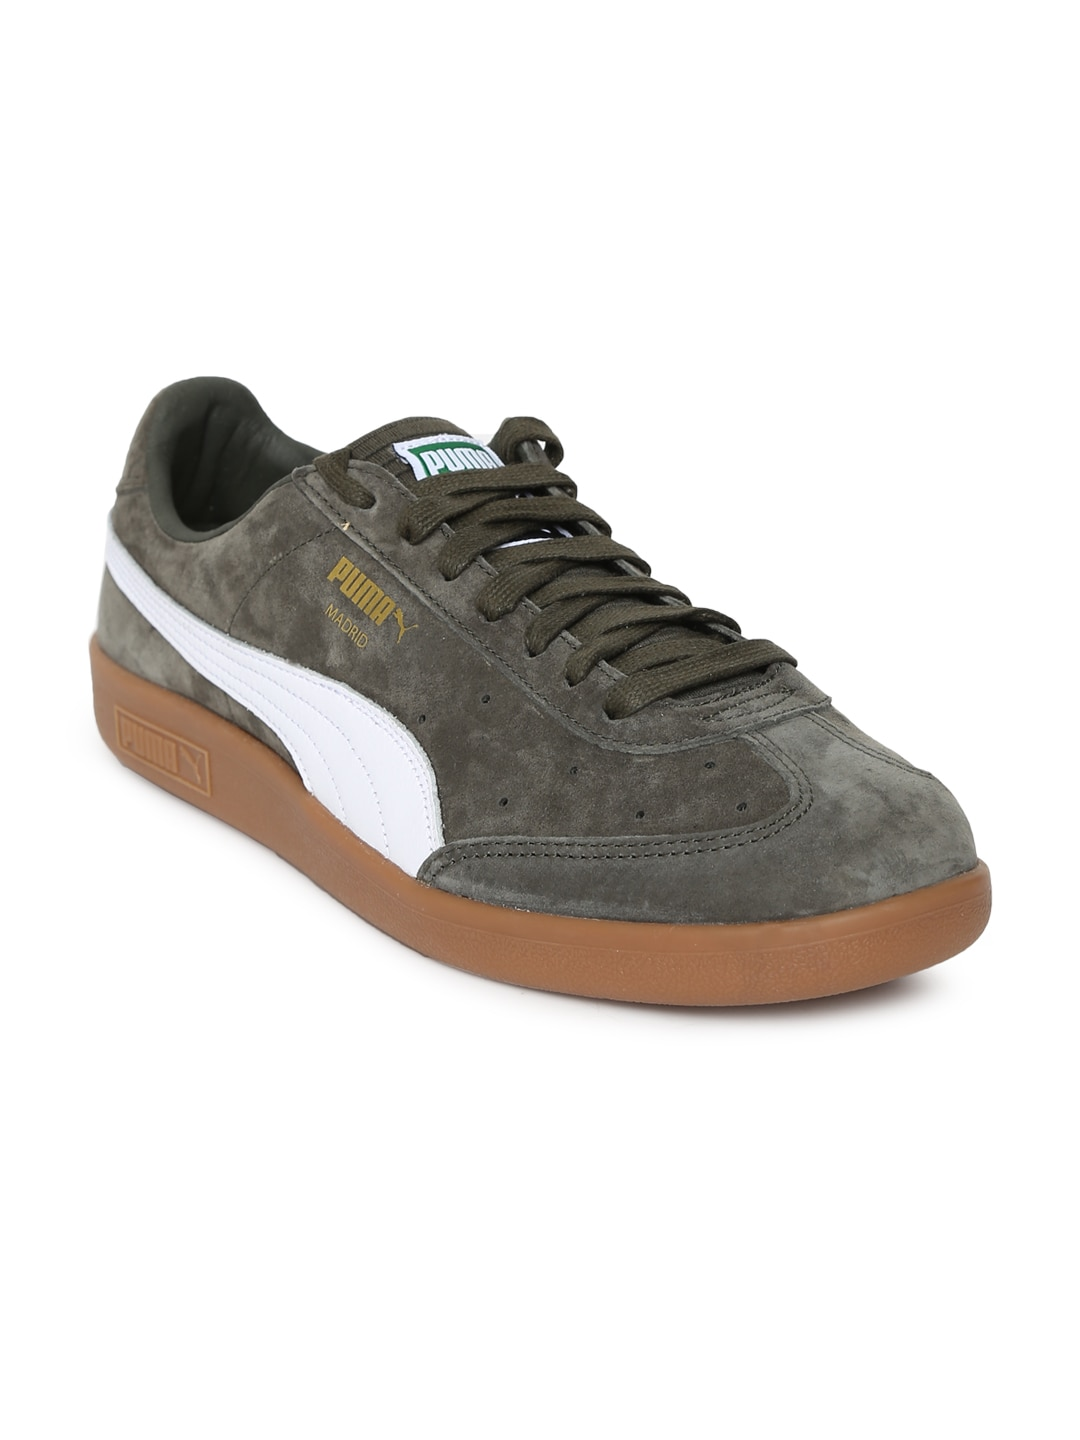 Puma Slip Casual Shoes Flats - Buy Puma Slip Casual Shoes Flats online in  India 59e19ca0c